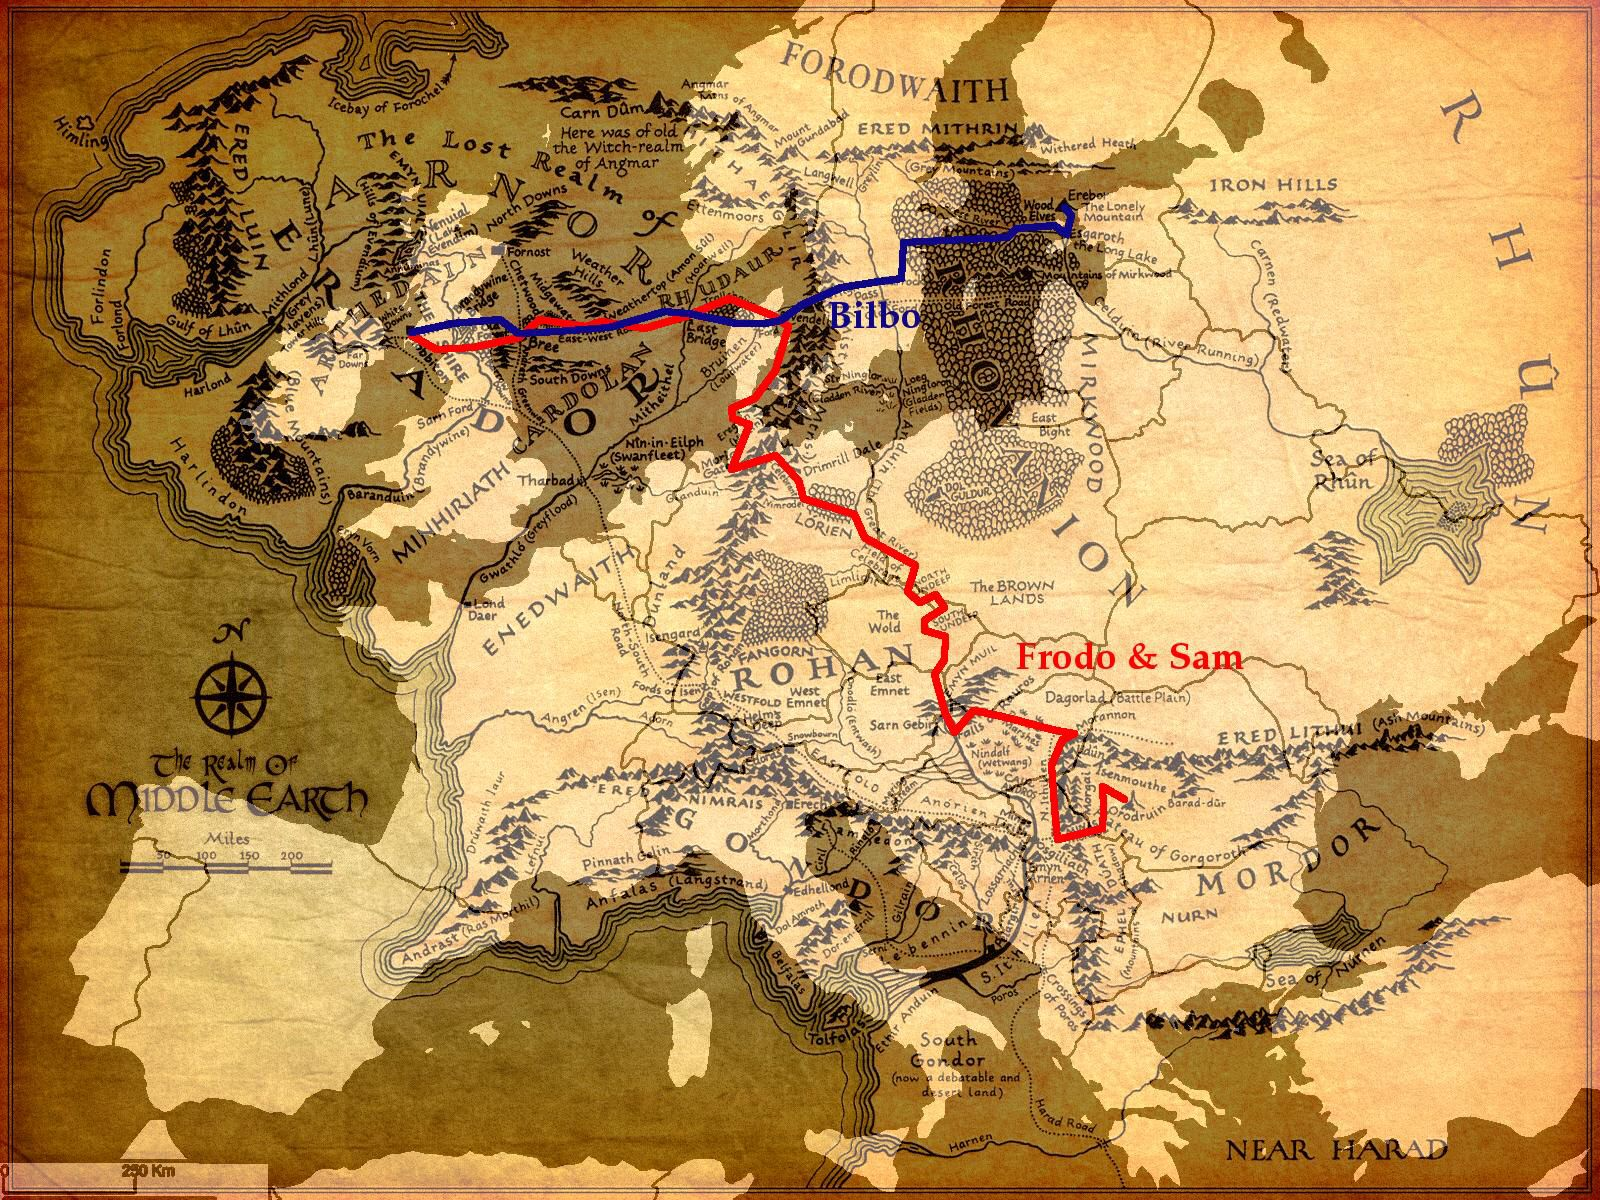 Middle Earth superimposed on a map of